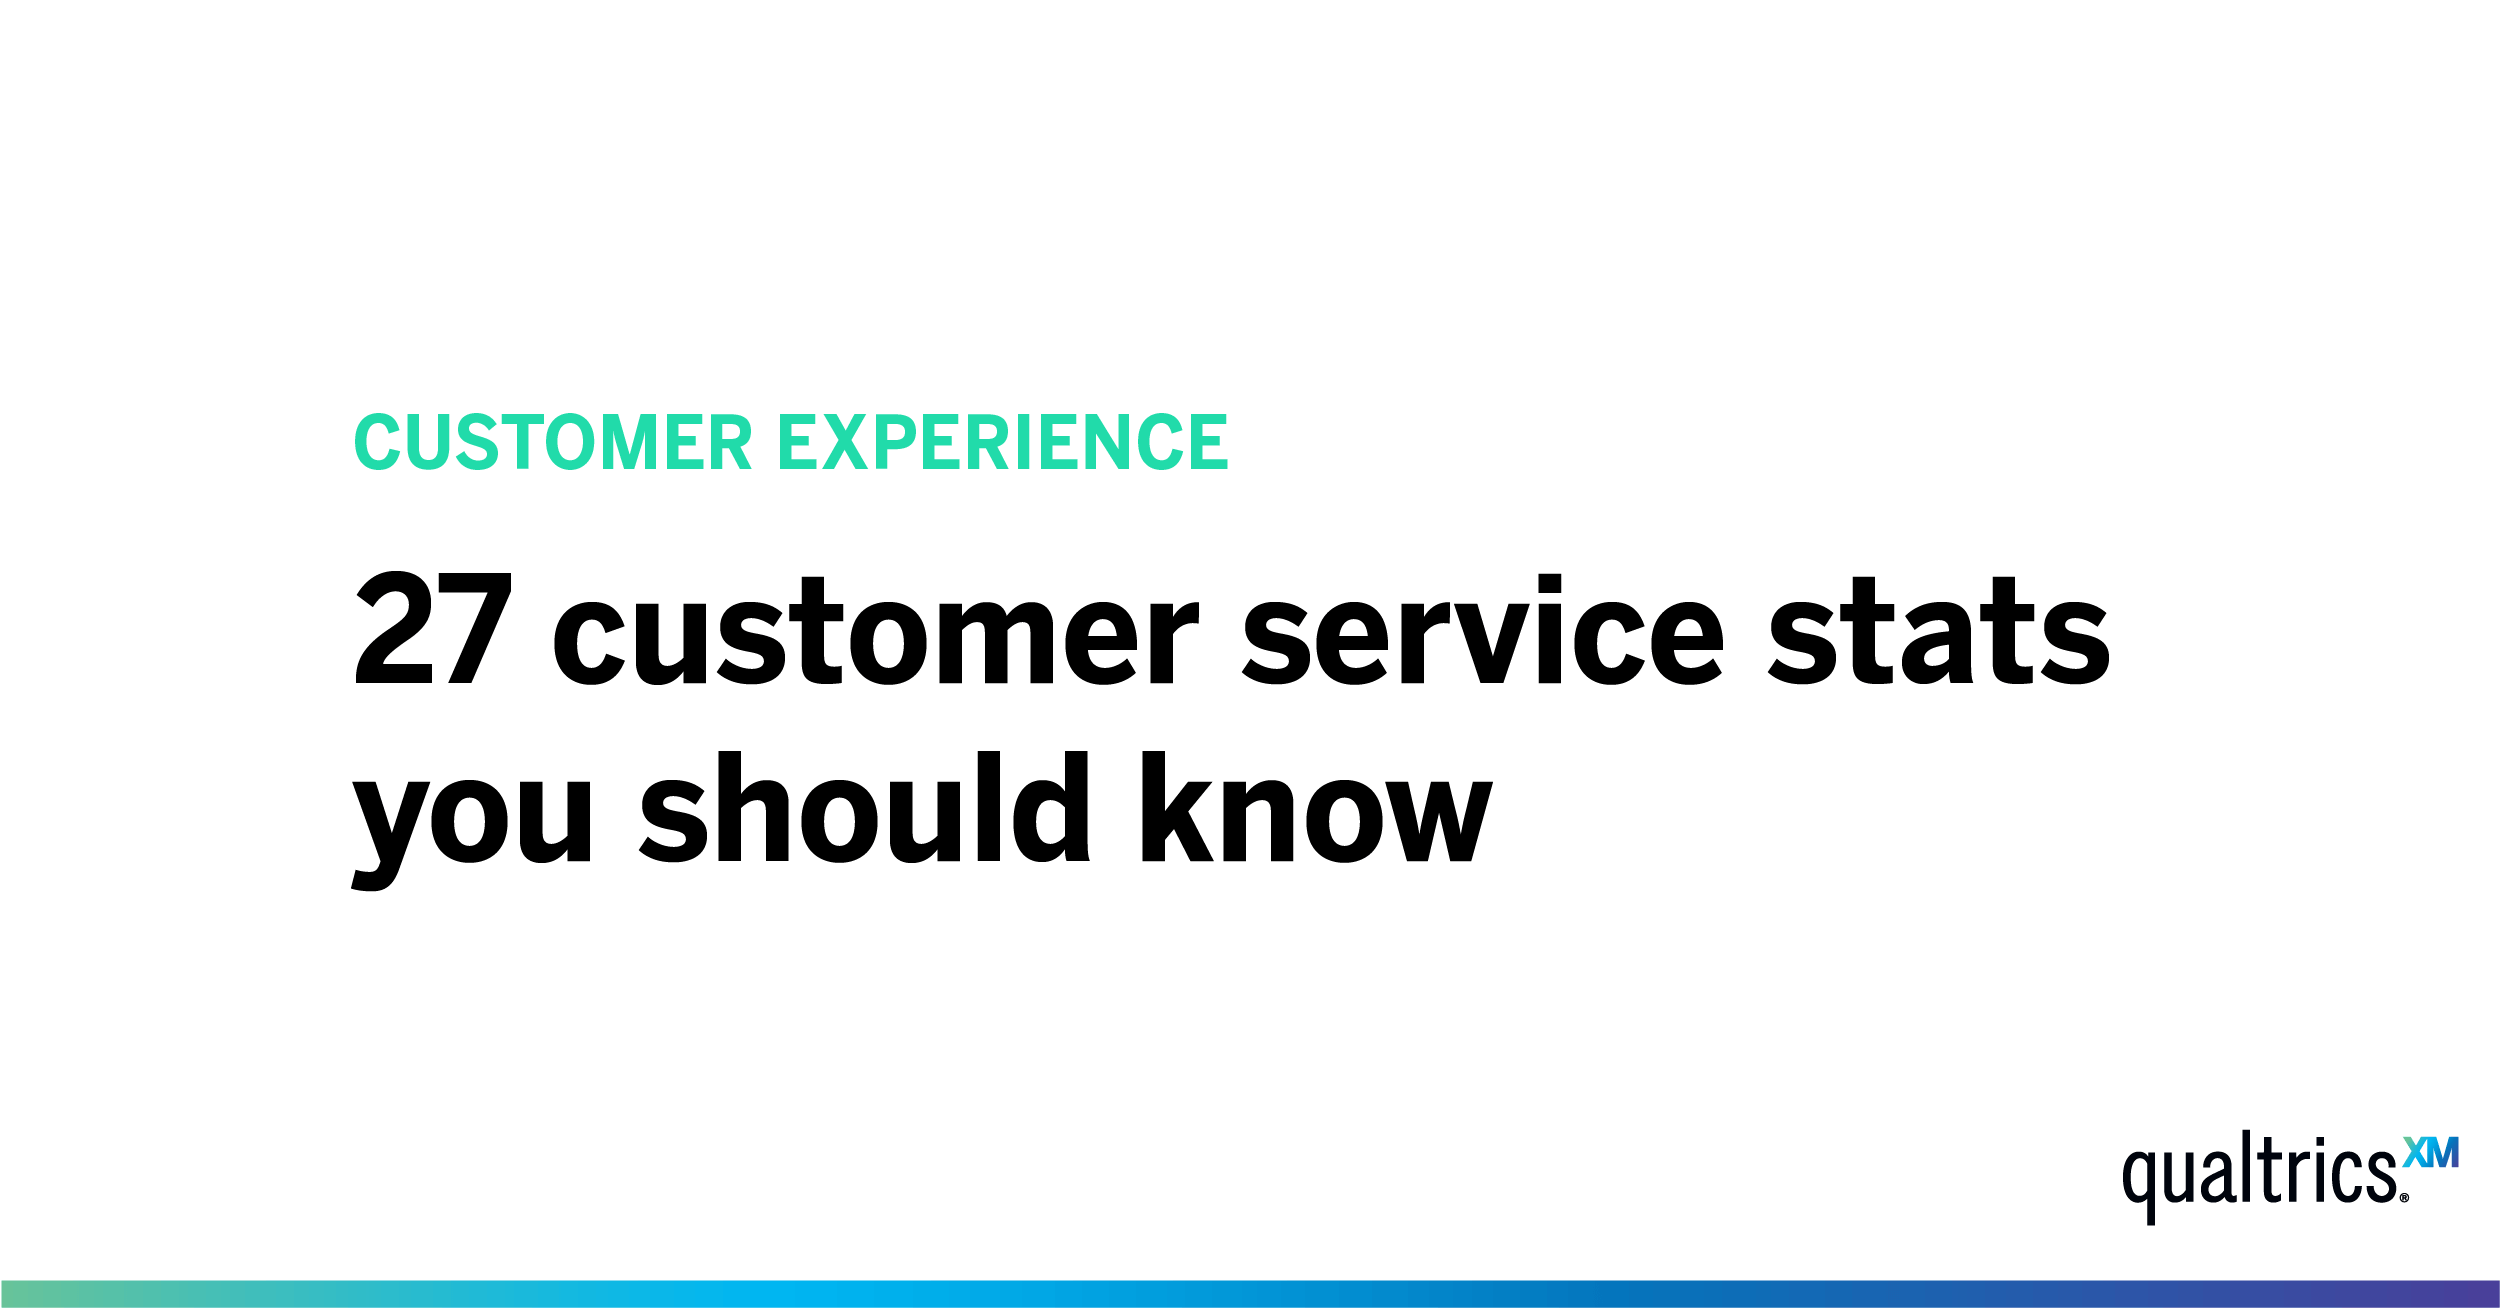 27 Customer Service Stats to Know in 2019